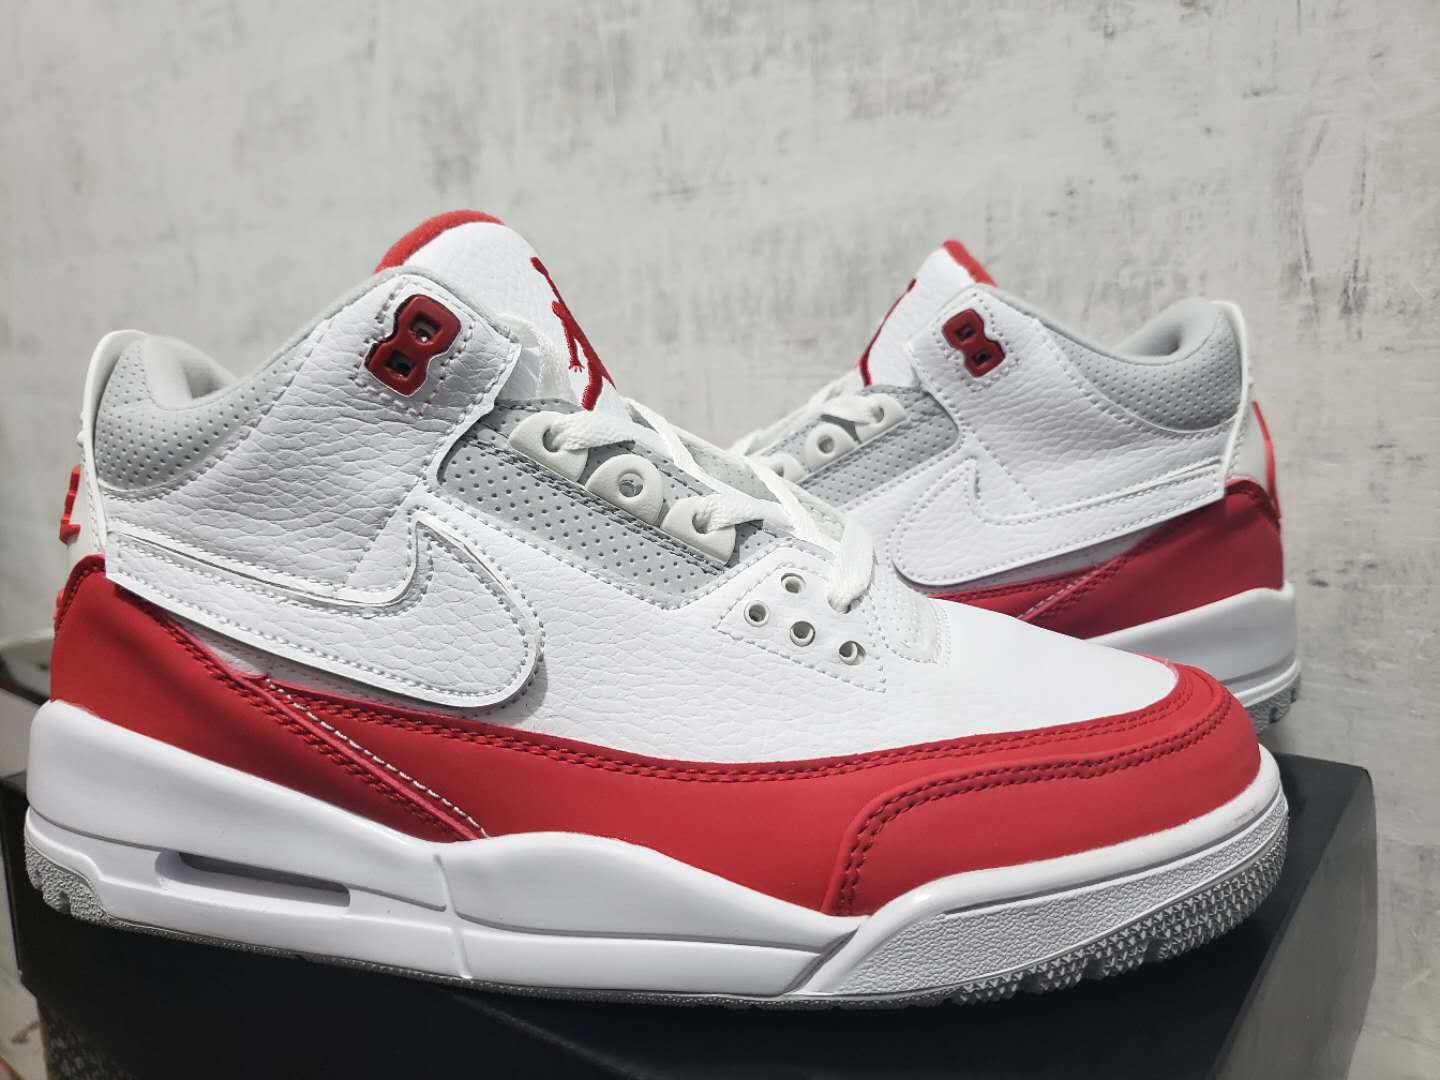 Air Jordan Shoes 3 White Red Drawing For Cheap